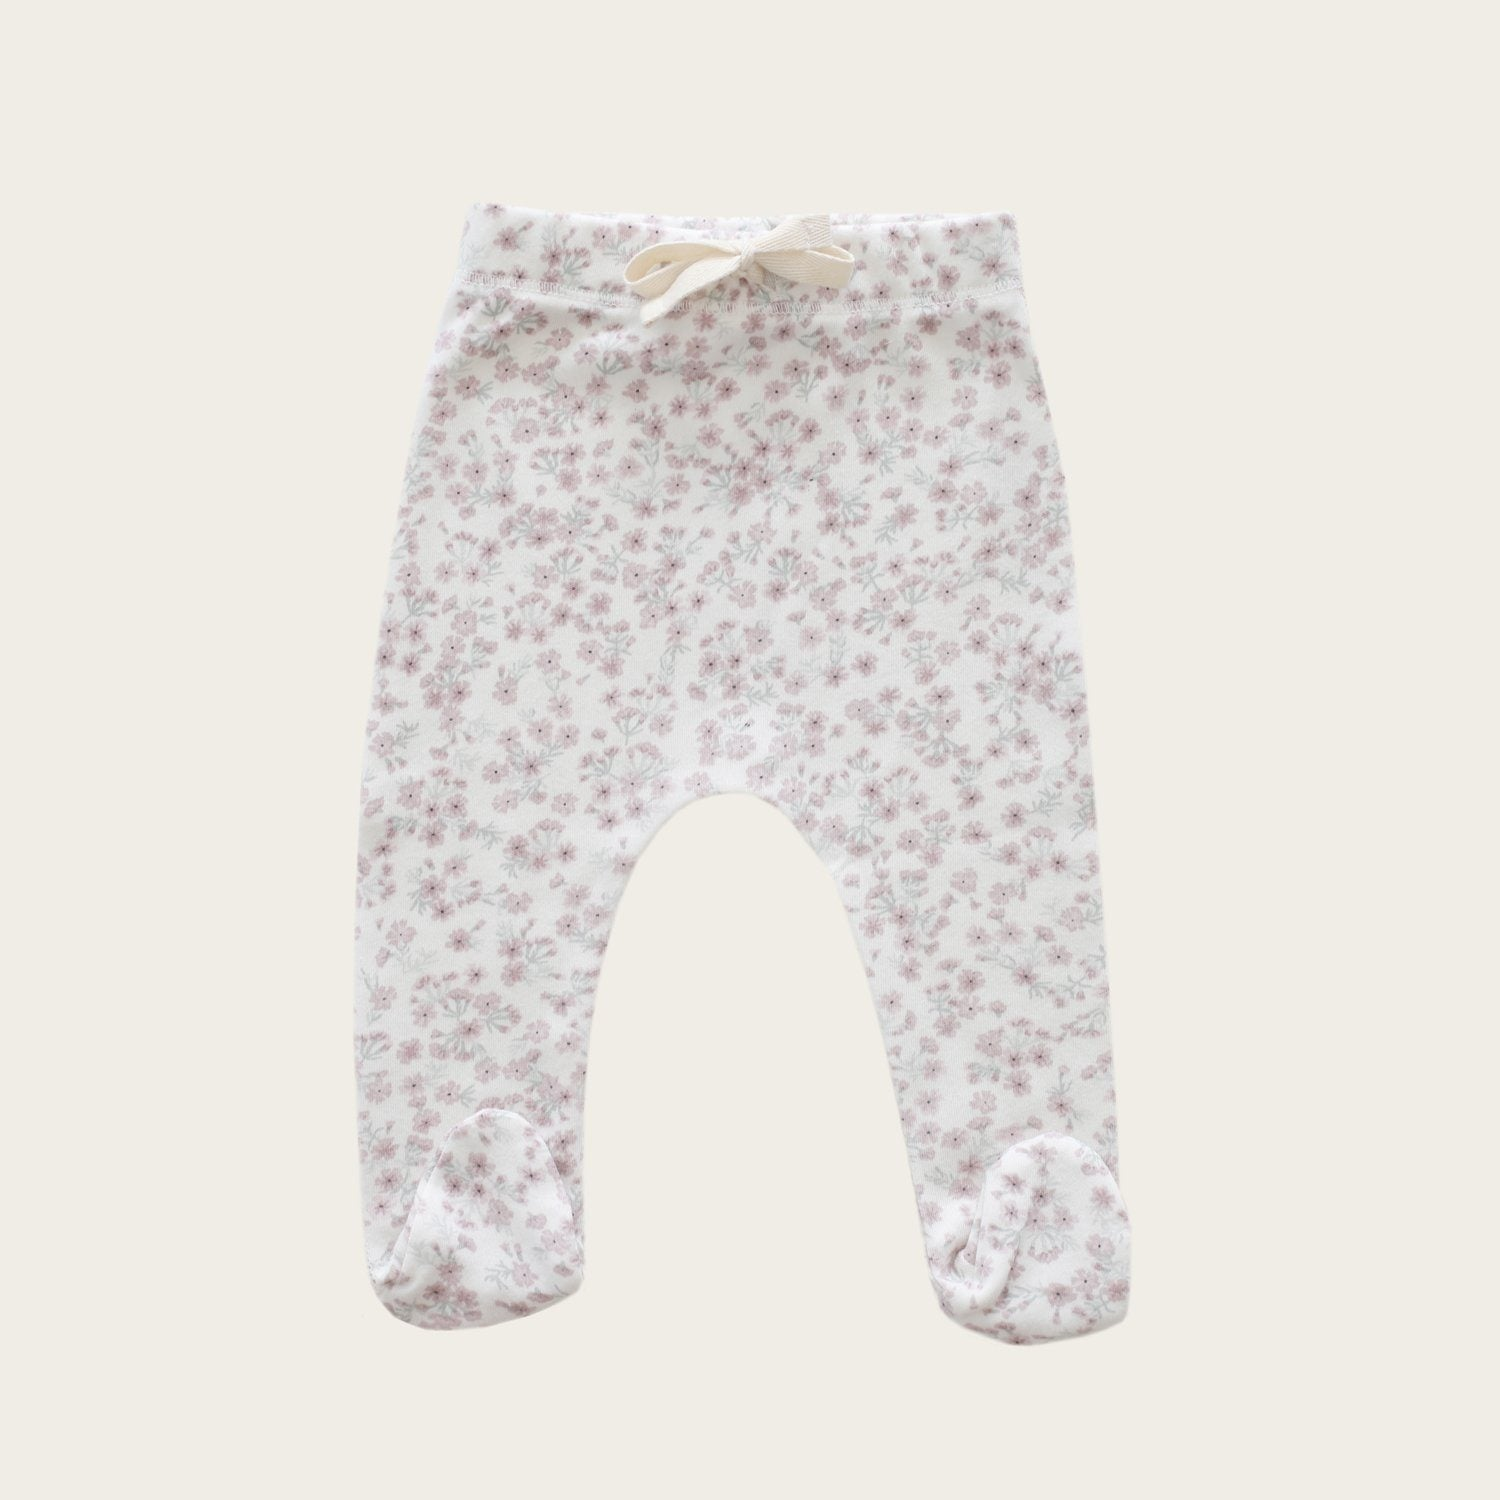 Posy Floral Footed Pants